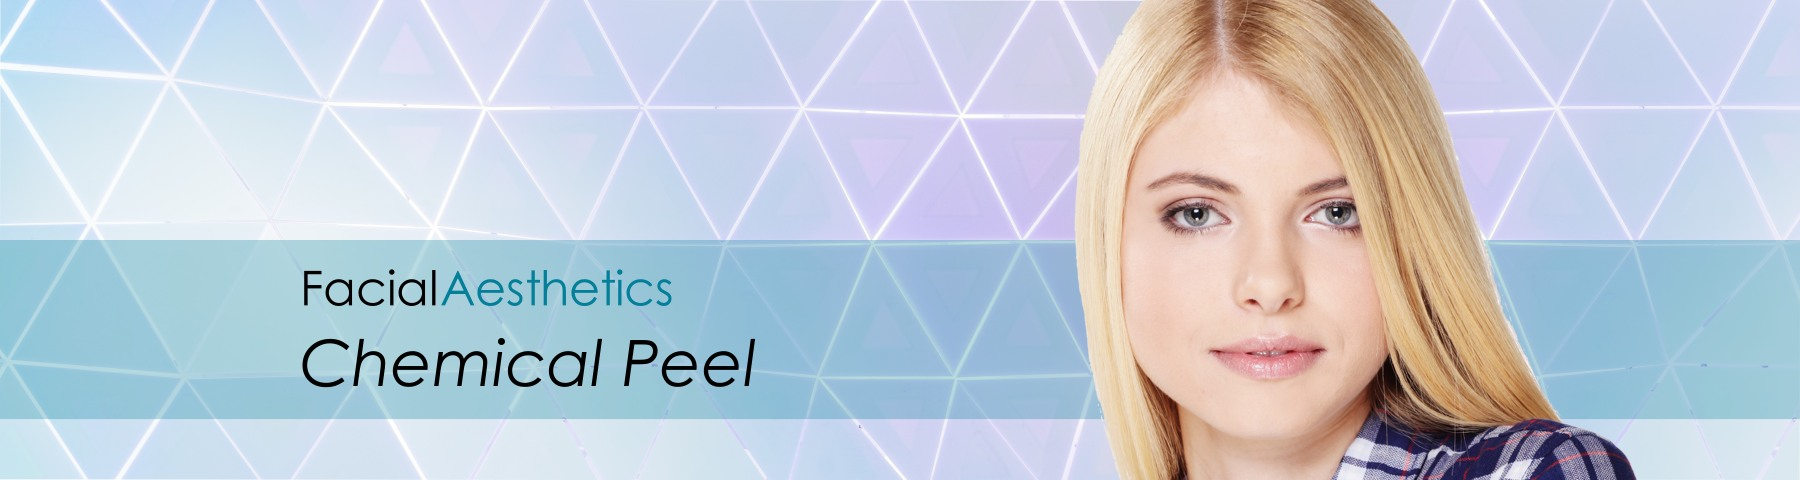 Ranelagh Dublin Clinic - face lifts Chemical Peel